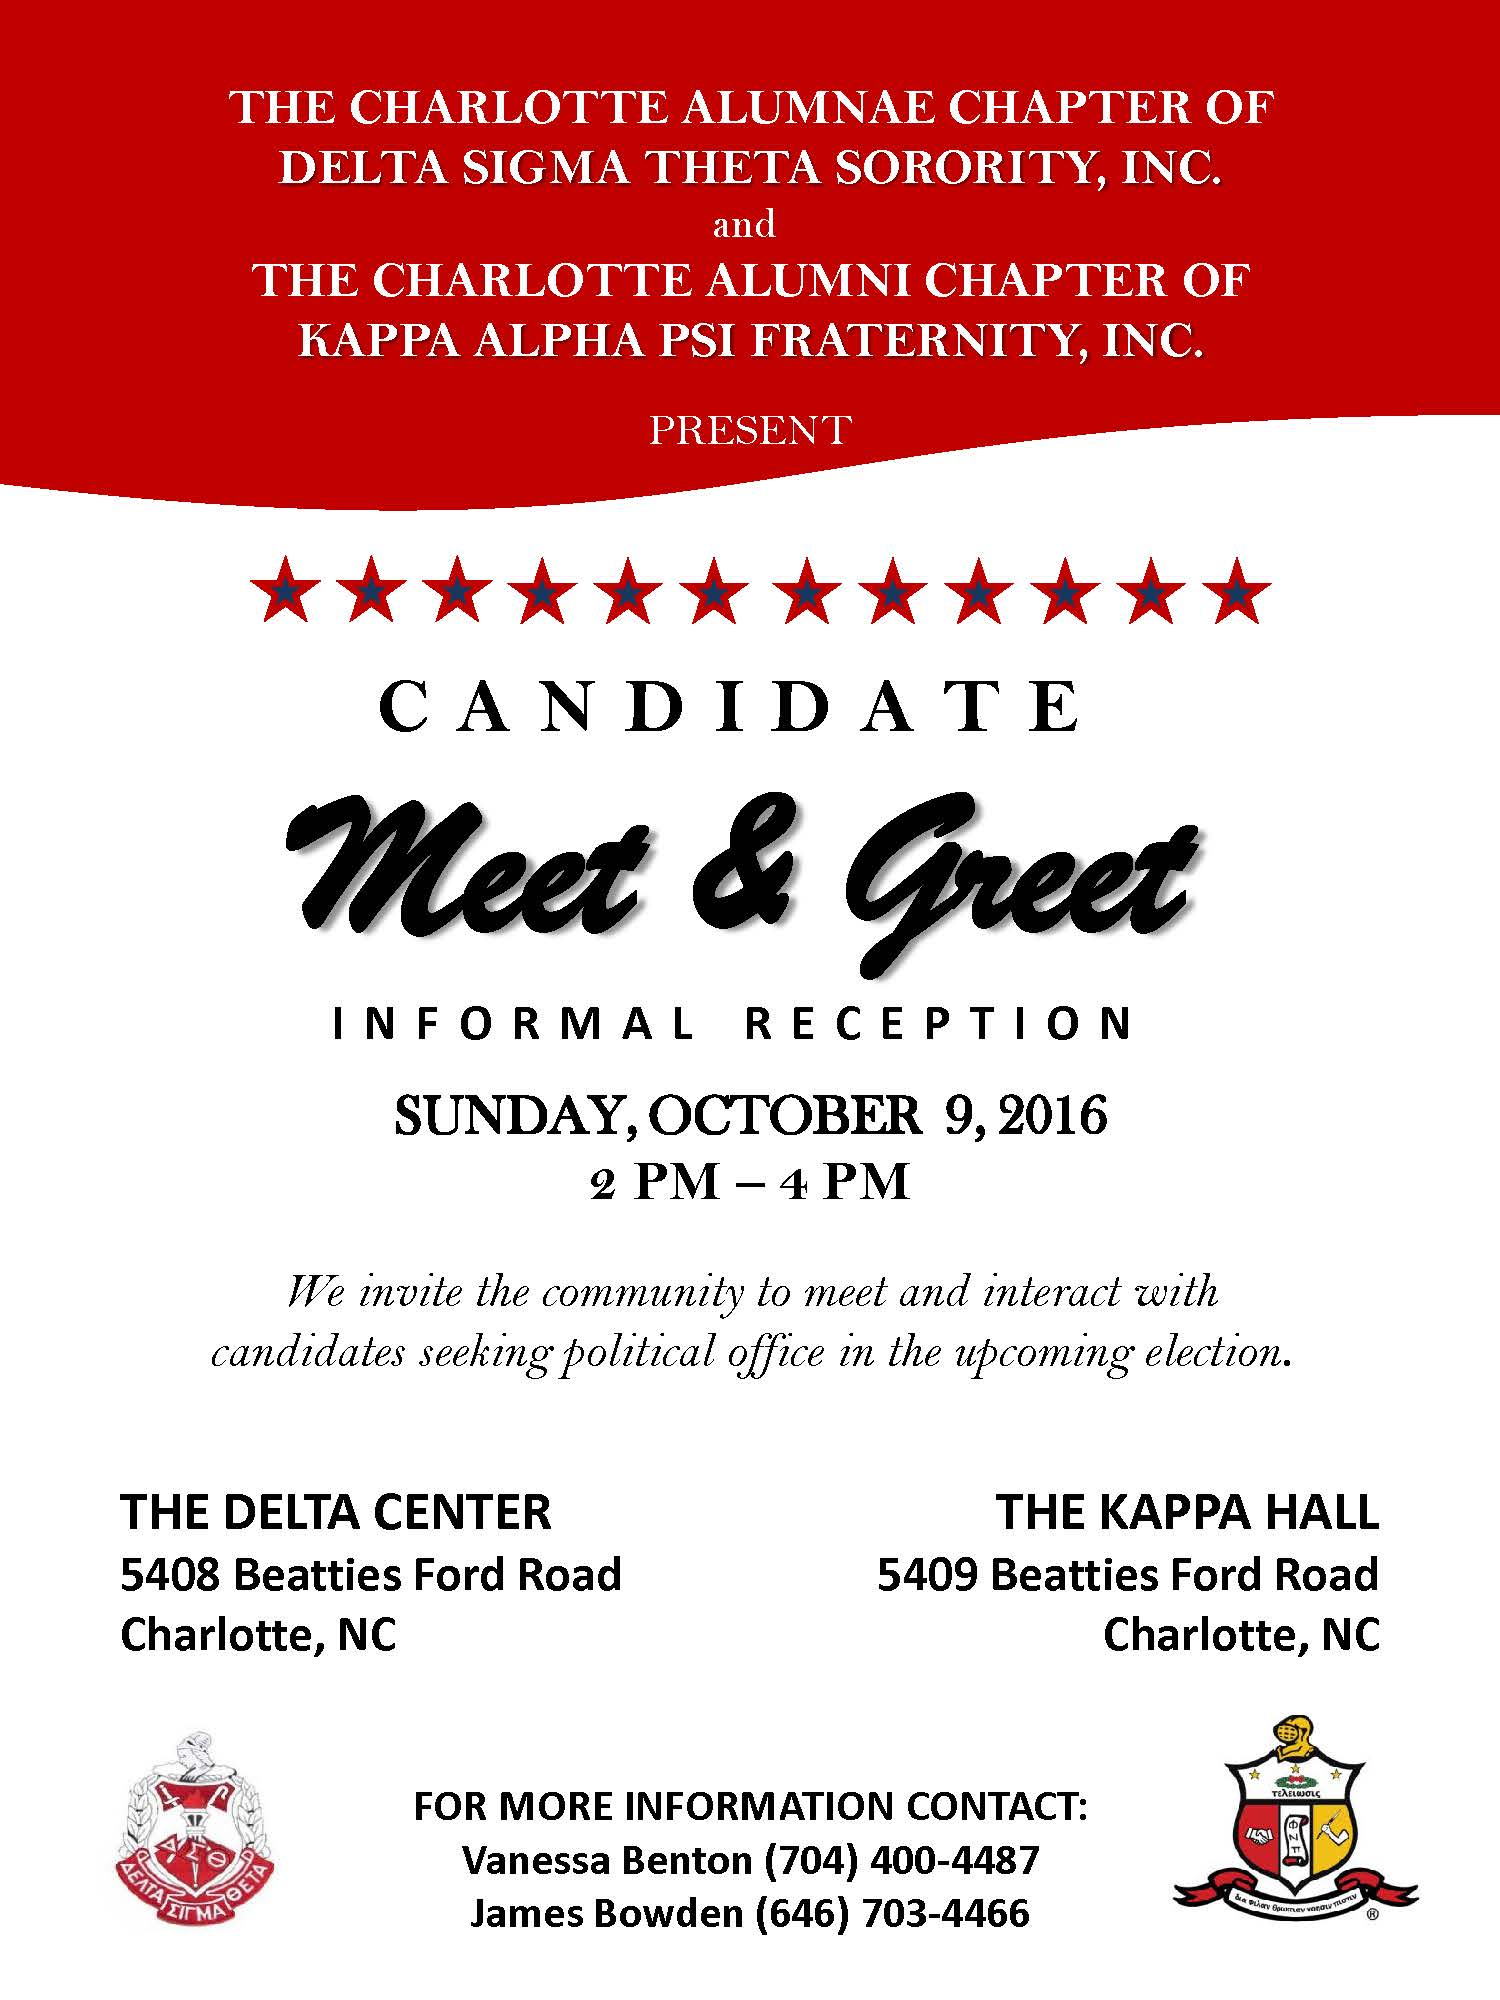 Candidate meet and greet q city metro the community is invited to a candidate meet and greet reception hosted by the charlotte alumnae chapter of delta sigma theta sorority inc and the m4hsunfo